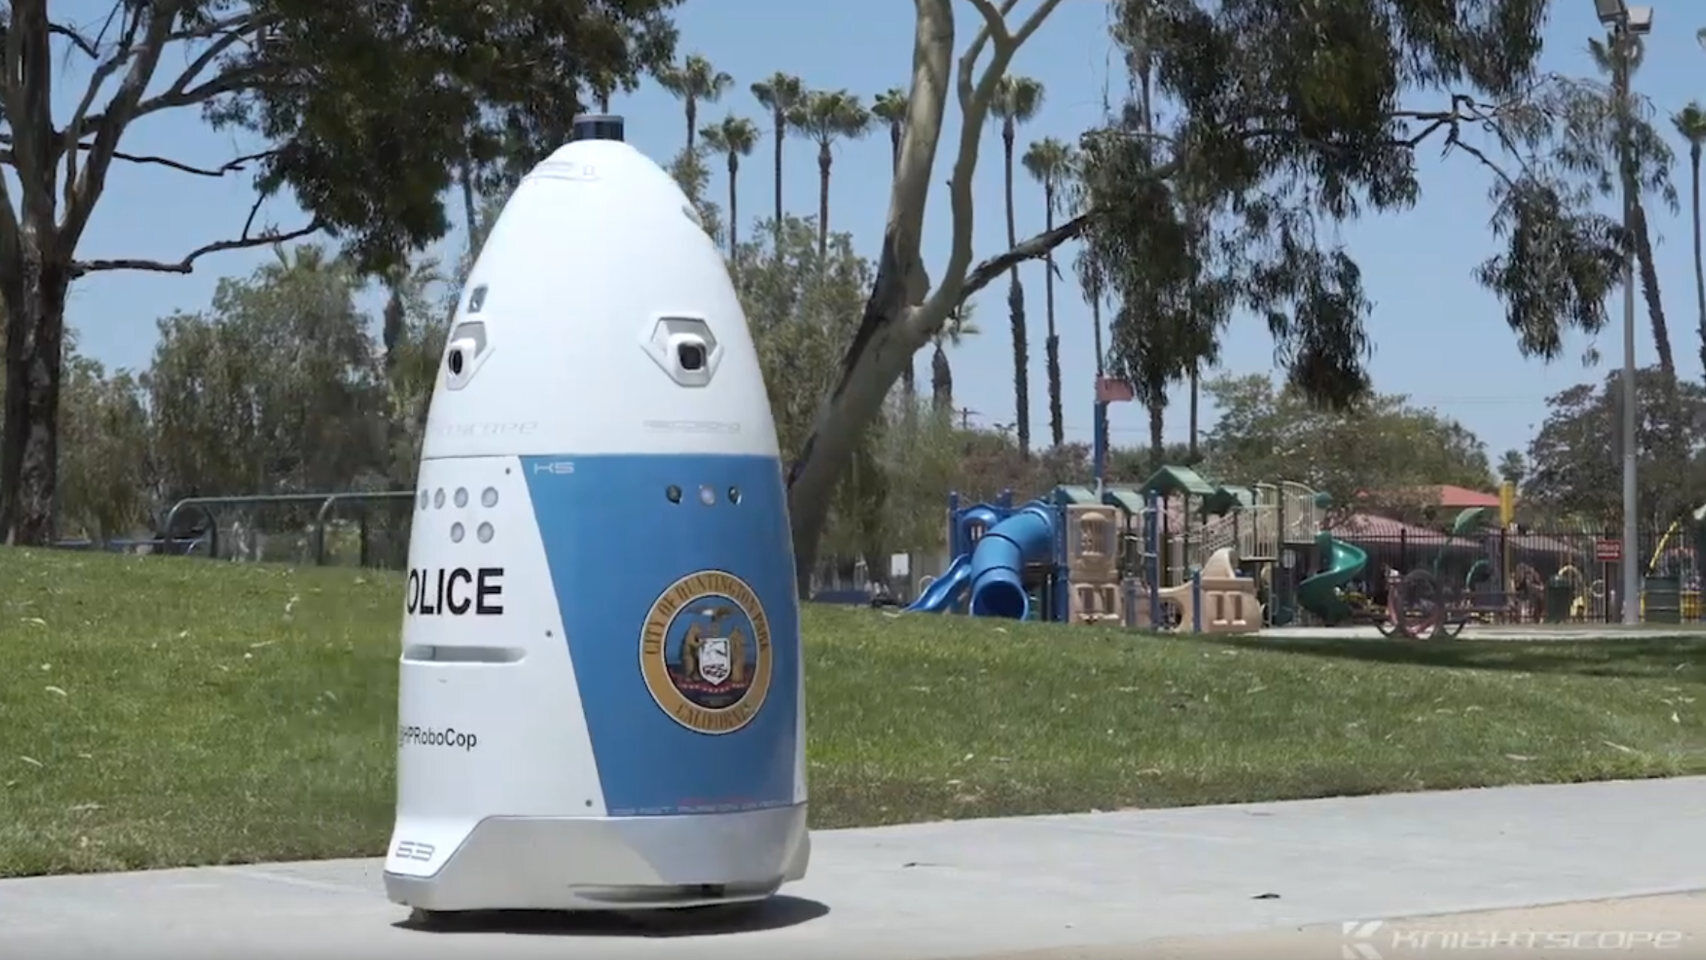 A police robot ignores distress calls because it is busy patrolling